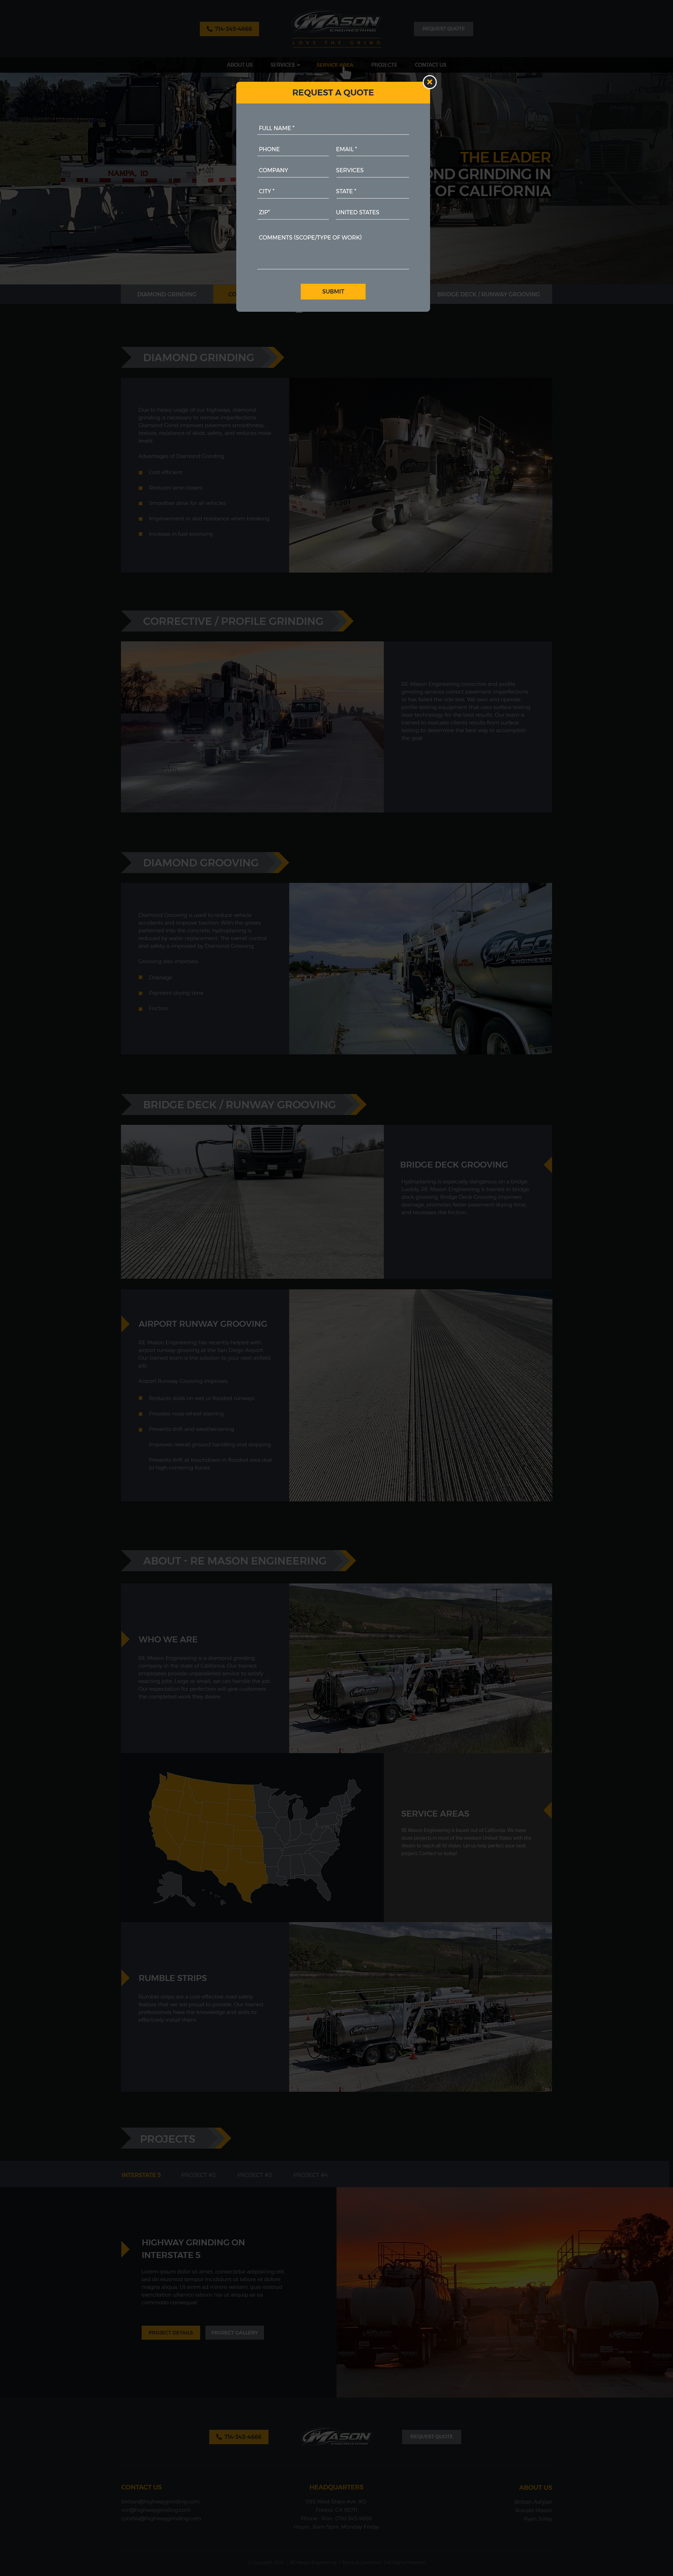 RE Mason Engineering - New One-Page Website